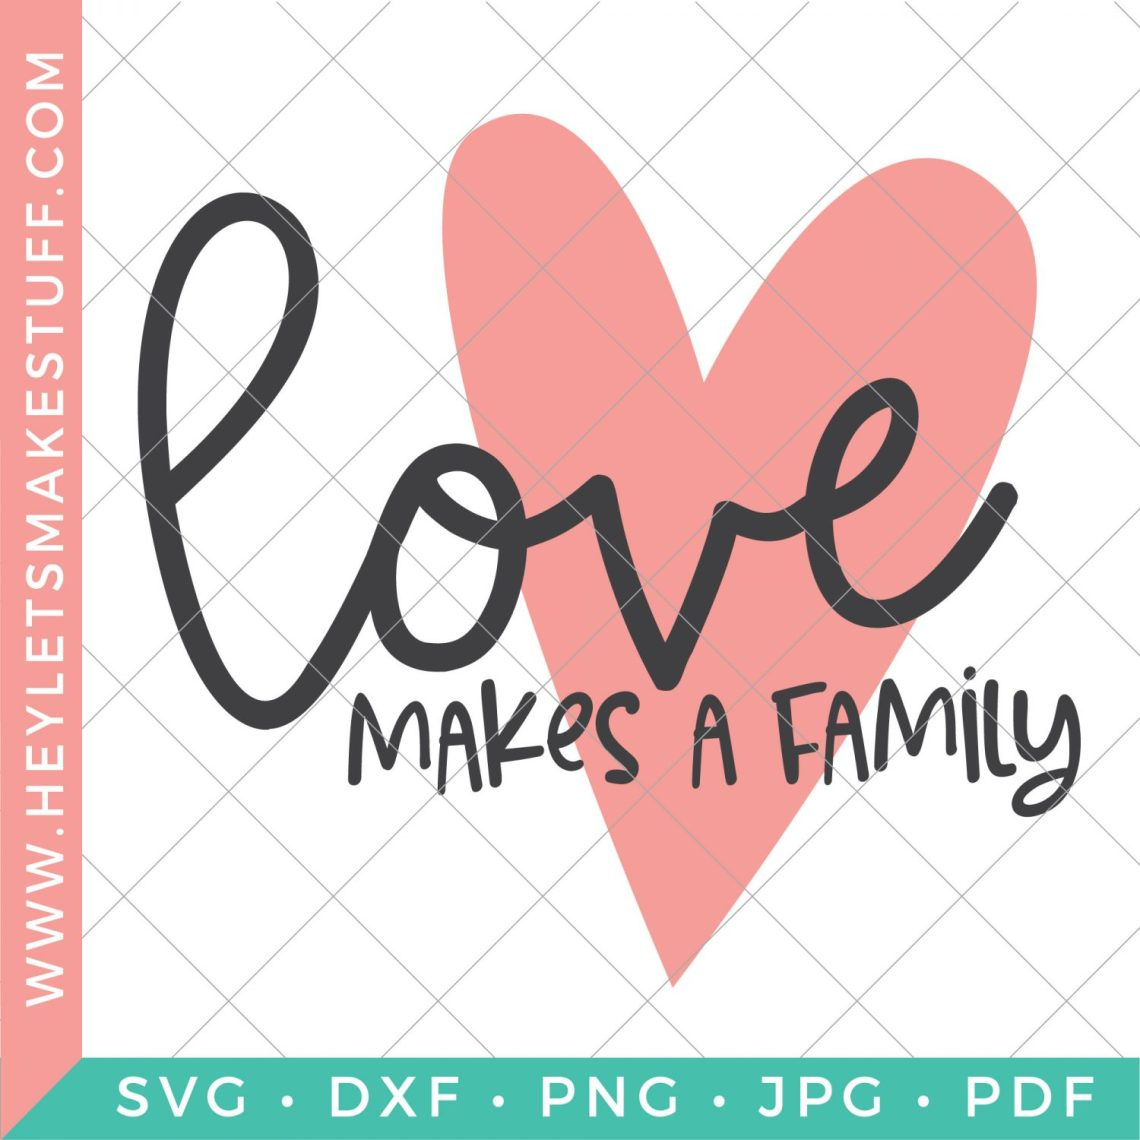 Download Free Love Makes a Family SVG for Cricut & Silhouette